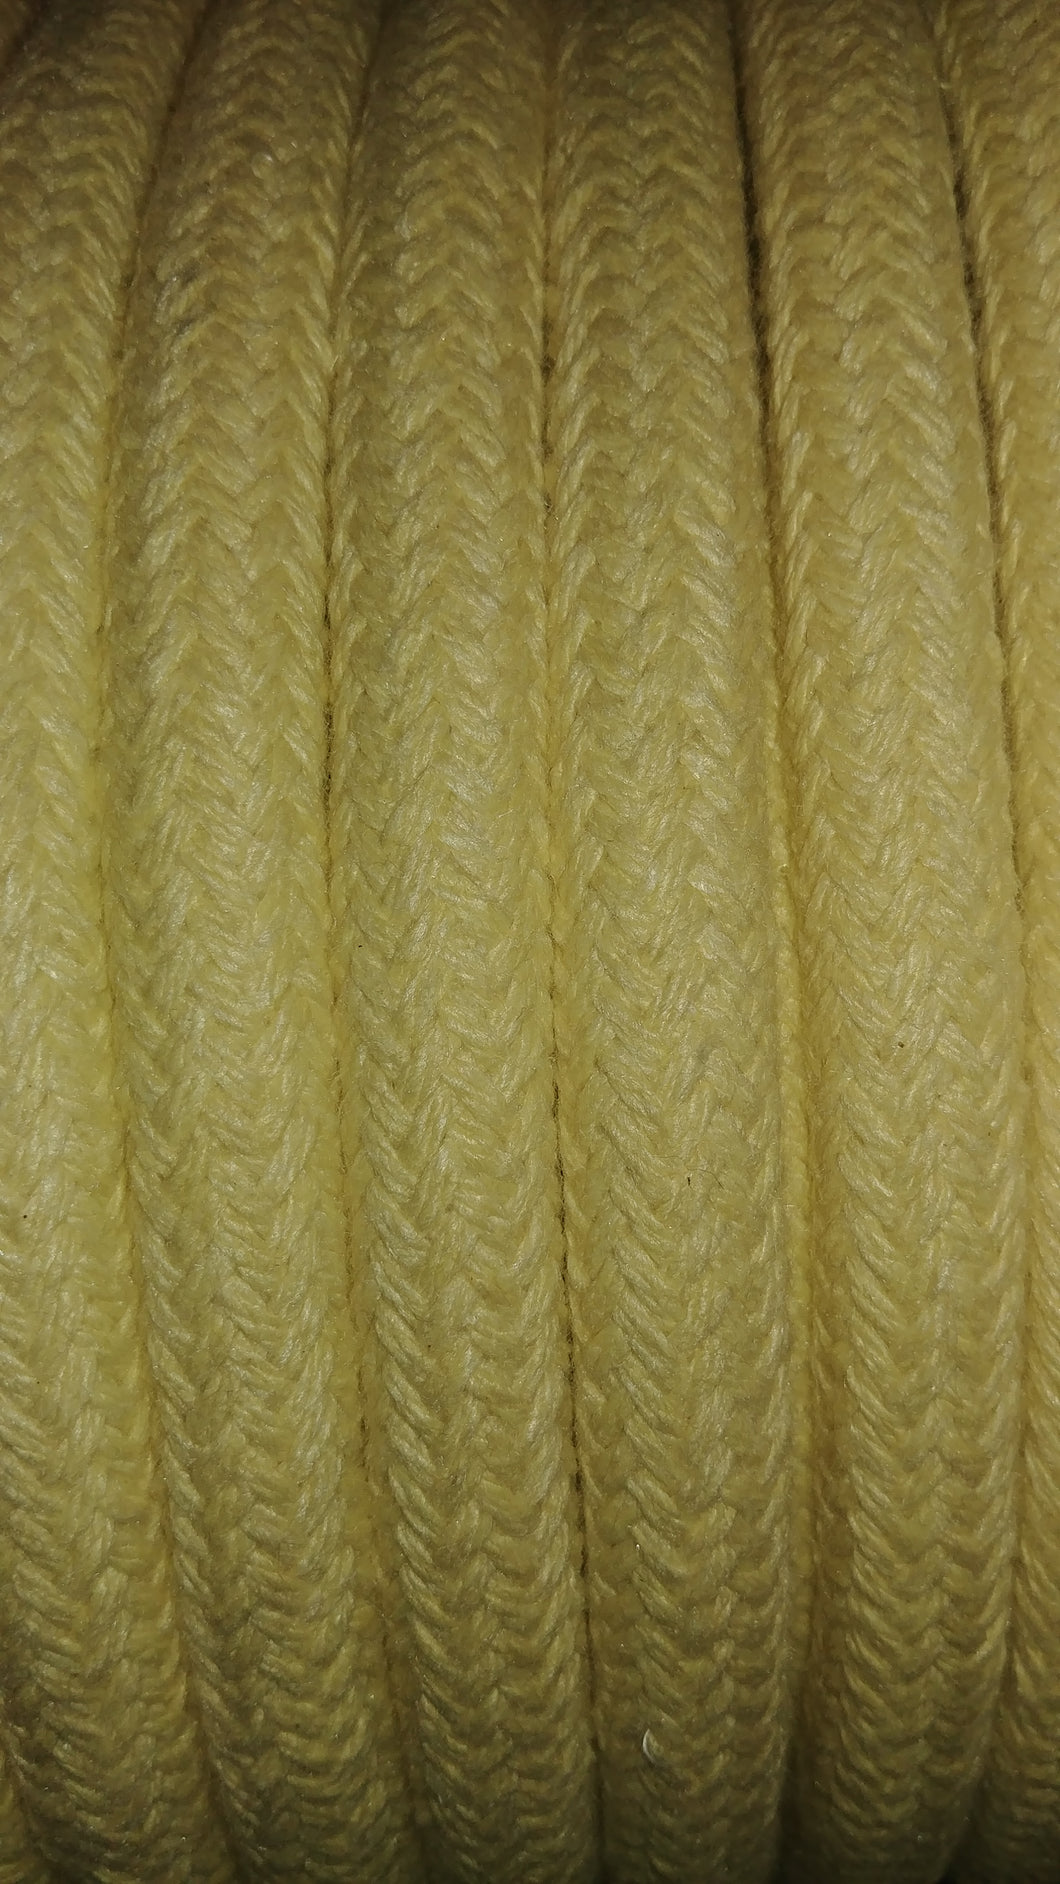 K1 Braided Rope Wick